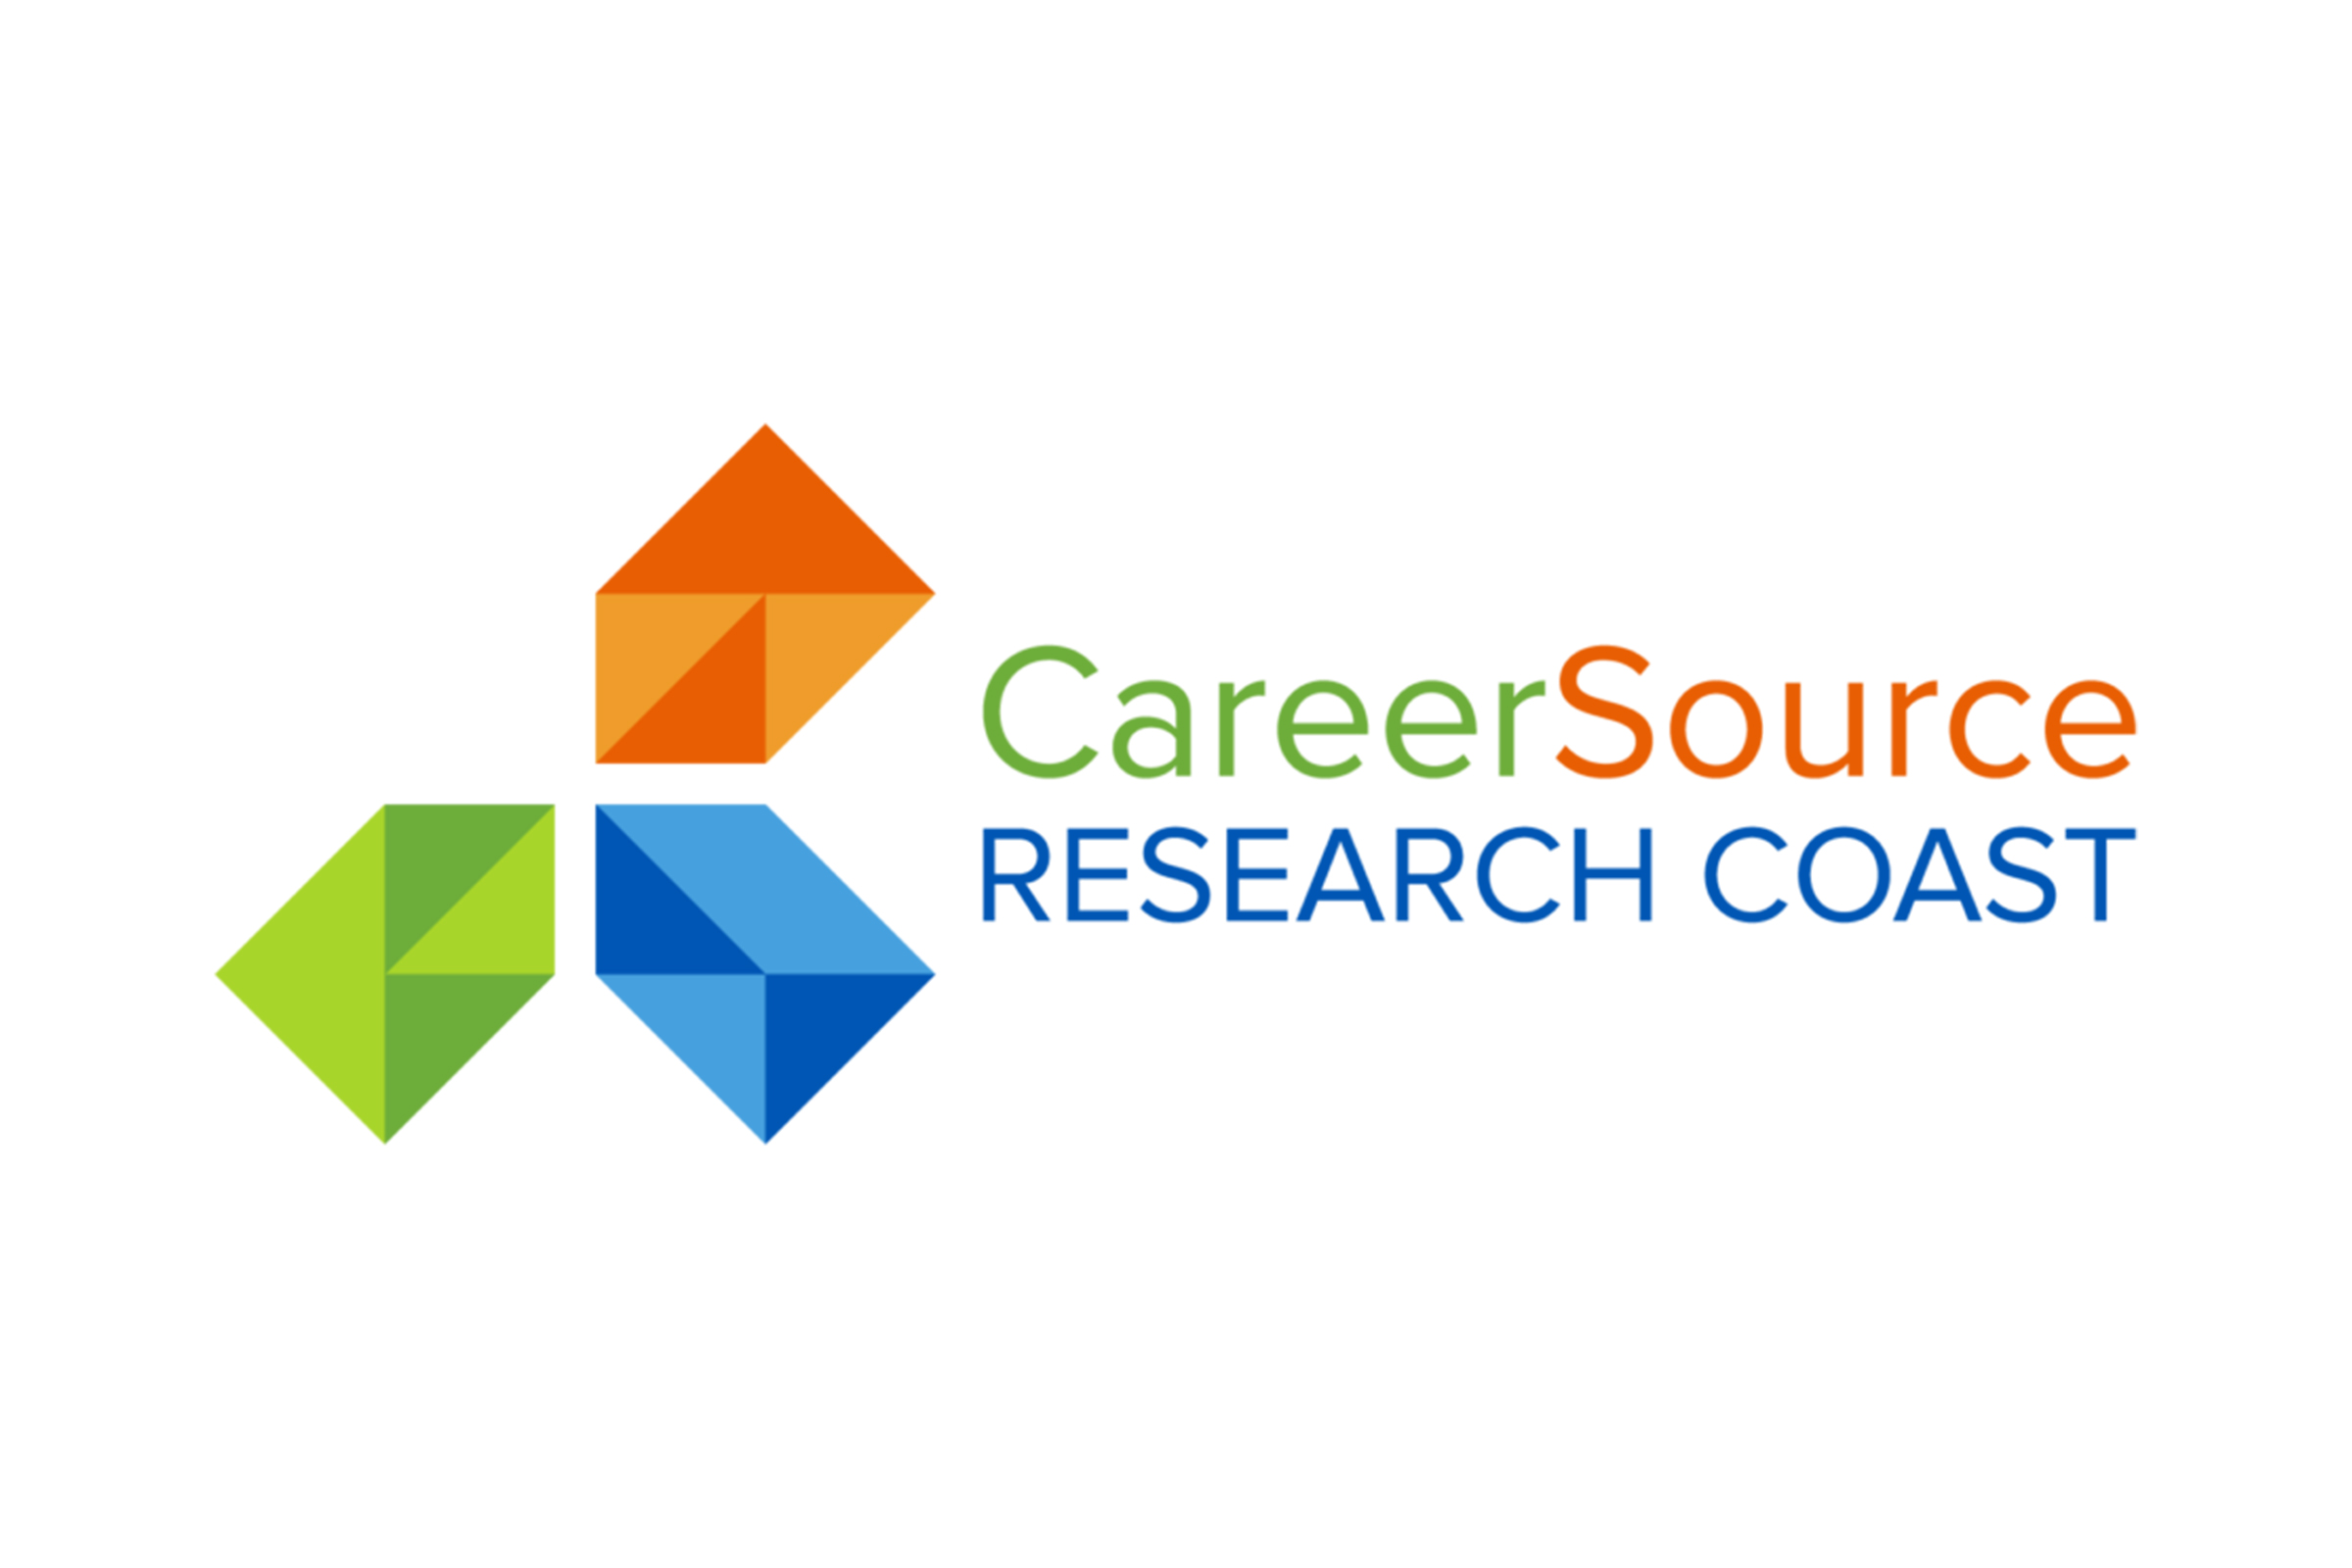 CareerSource Research Coast